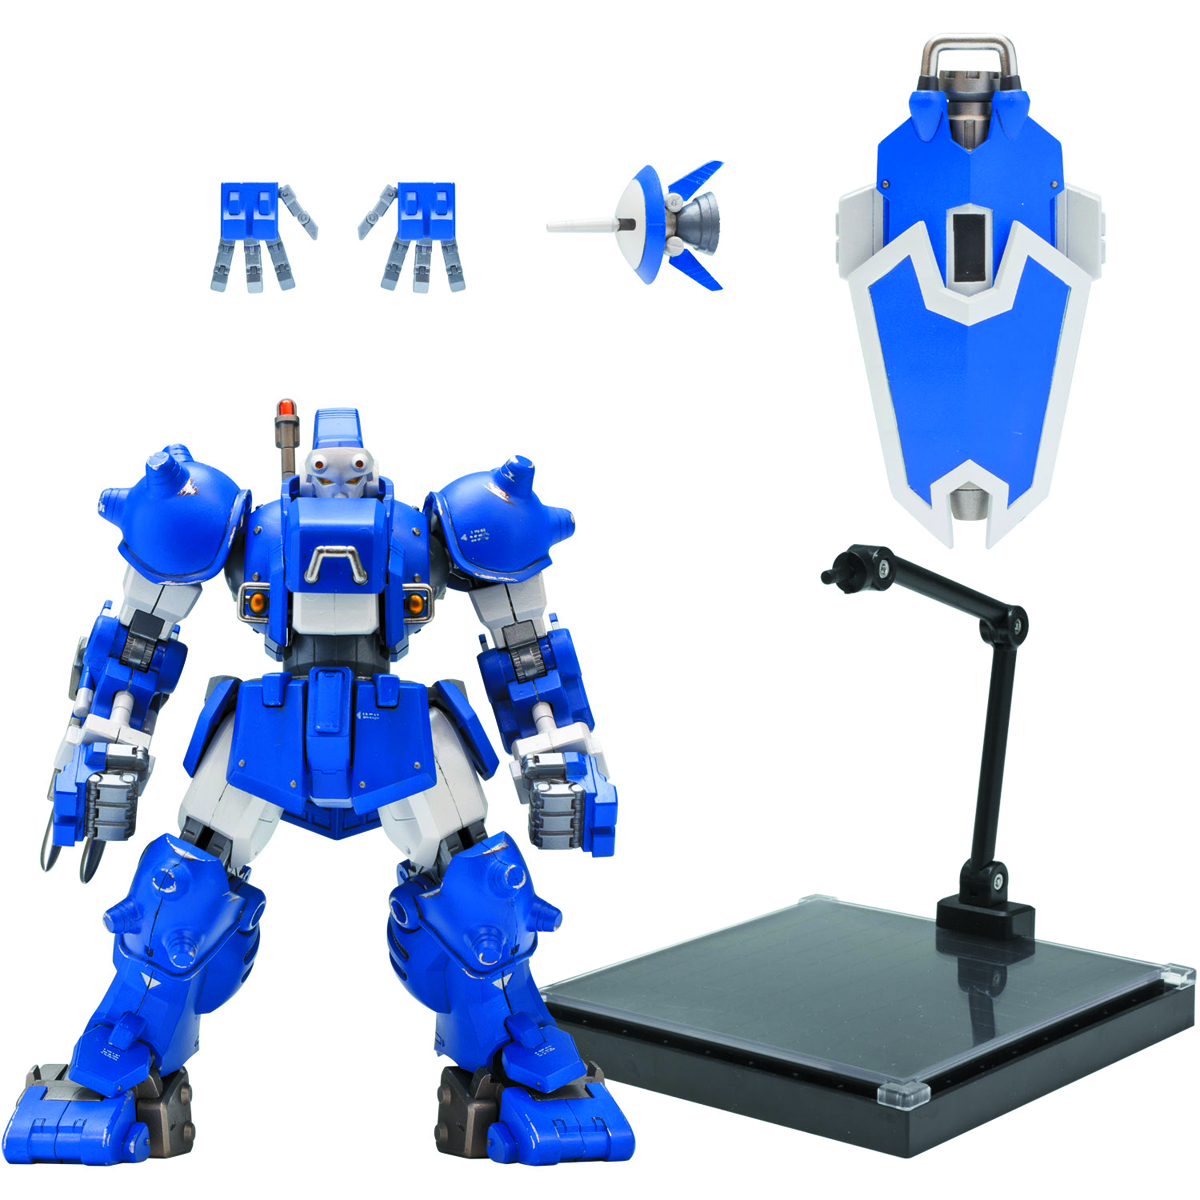 CYBERBOTS BLODIA RIOBOT BLUE VER